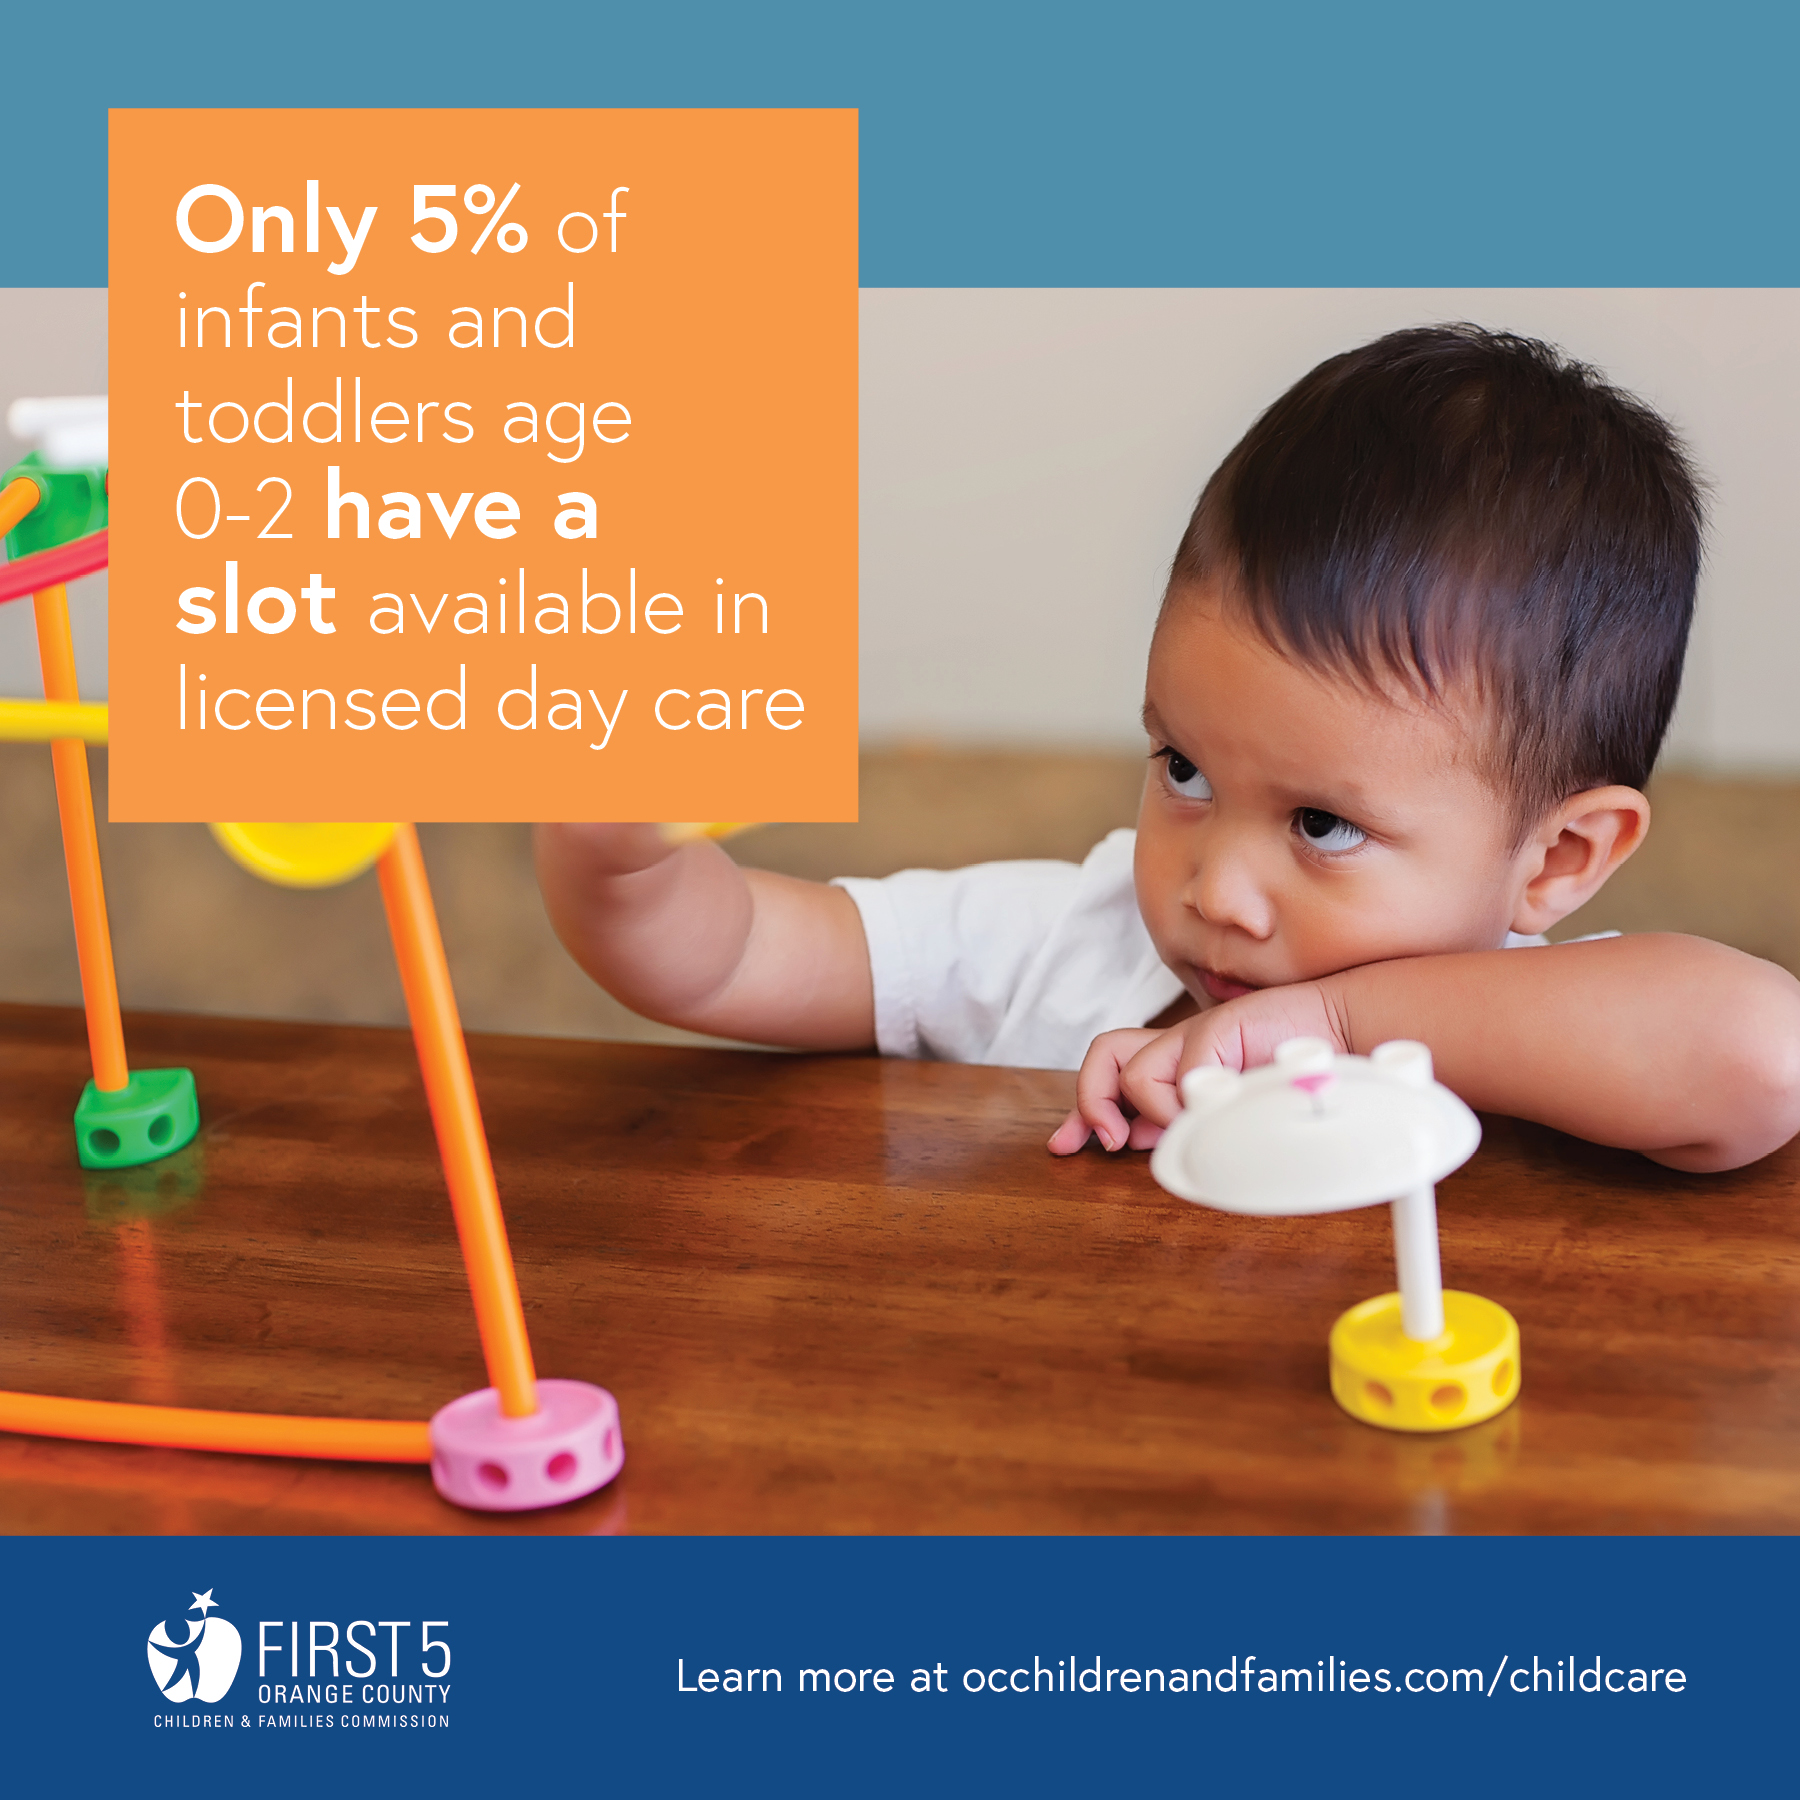 Only 5% of infants and toddlers age 0-2 have a slot available in licensed day care